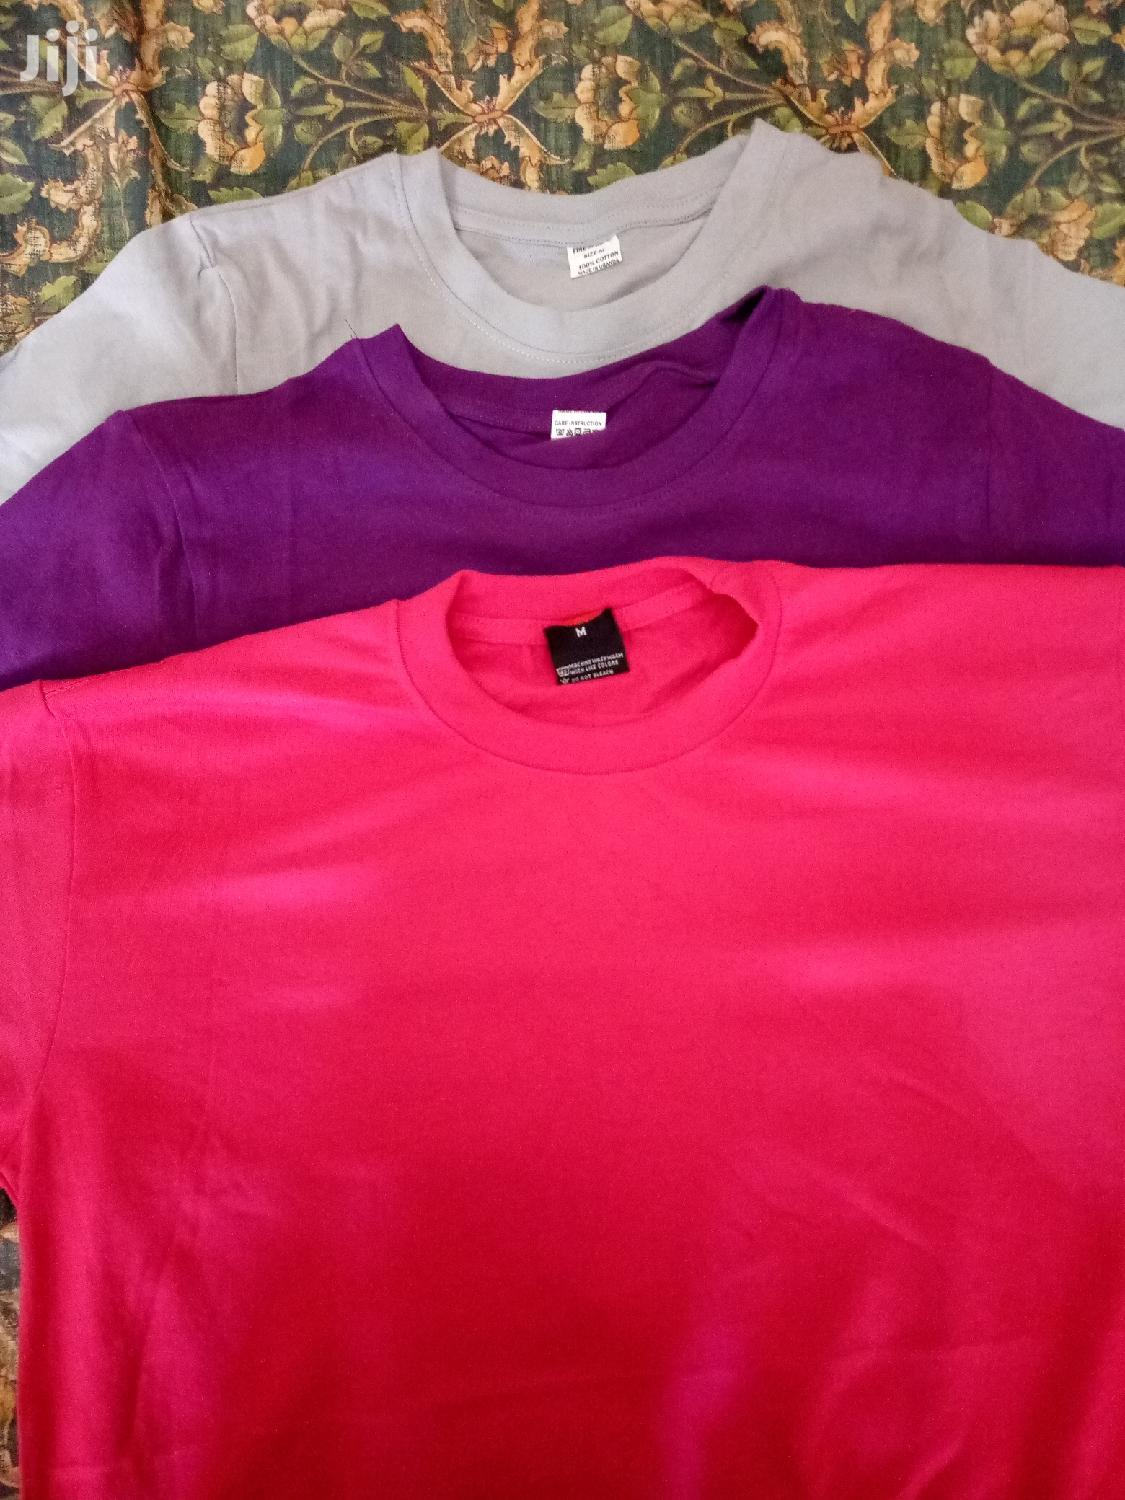 Unisex in All Colors | Clothing for sale in Kampala, Central Region, Uganda